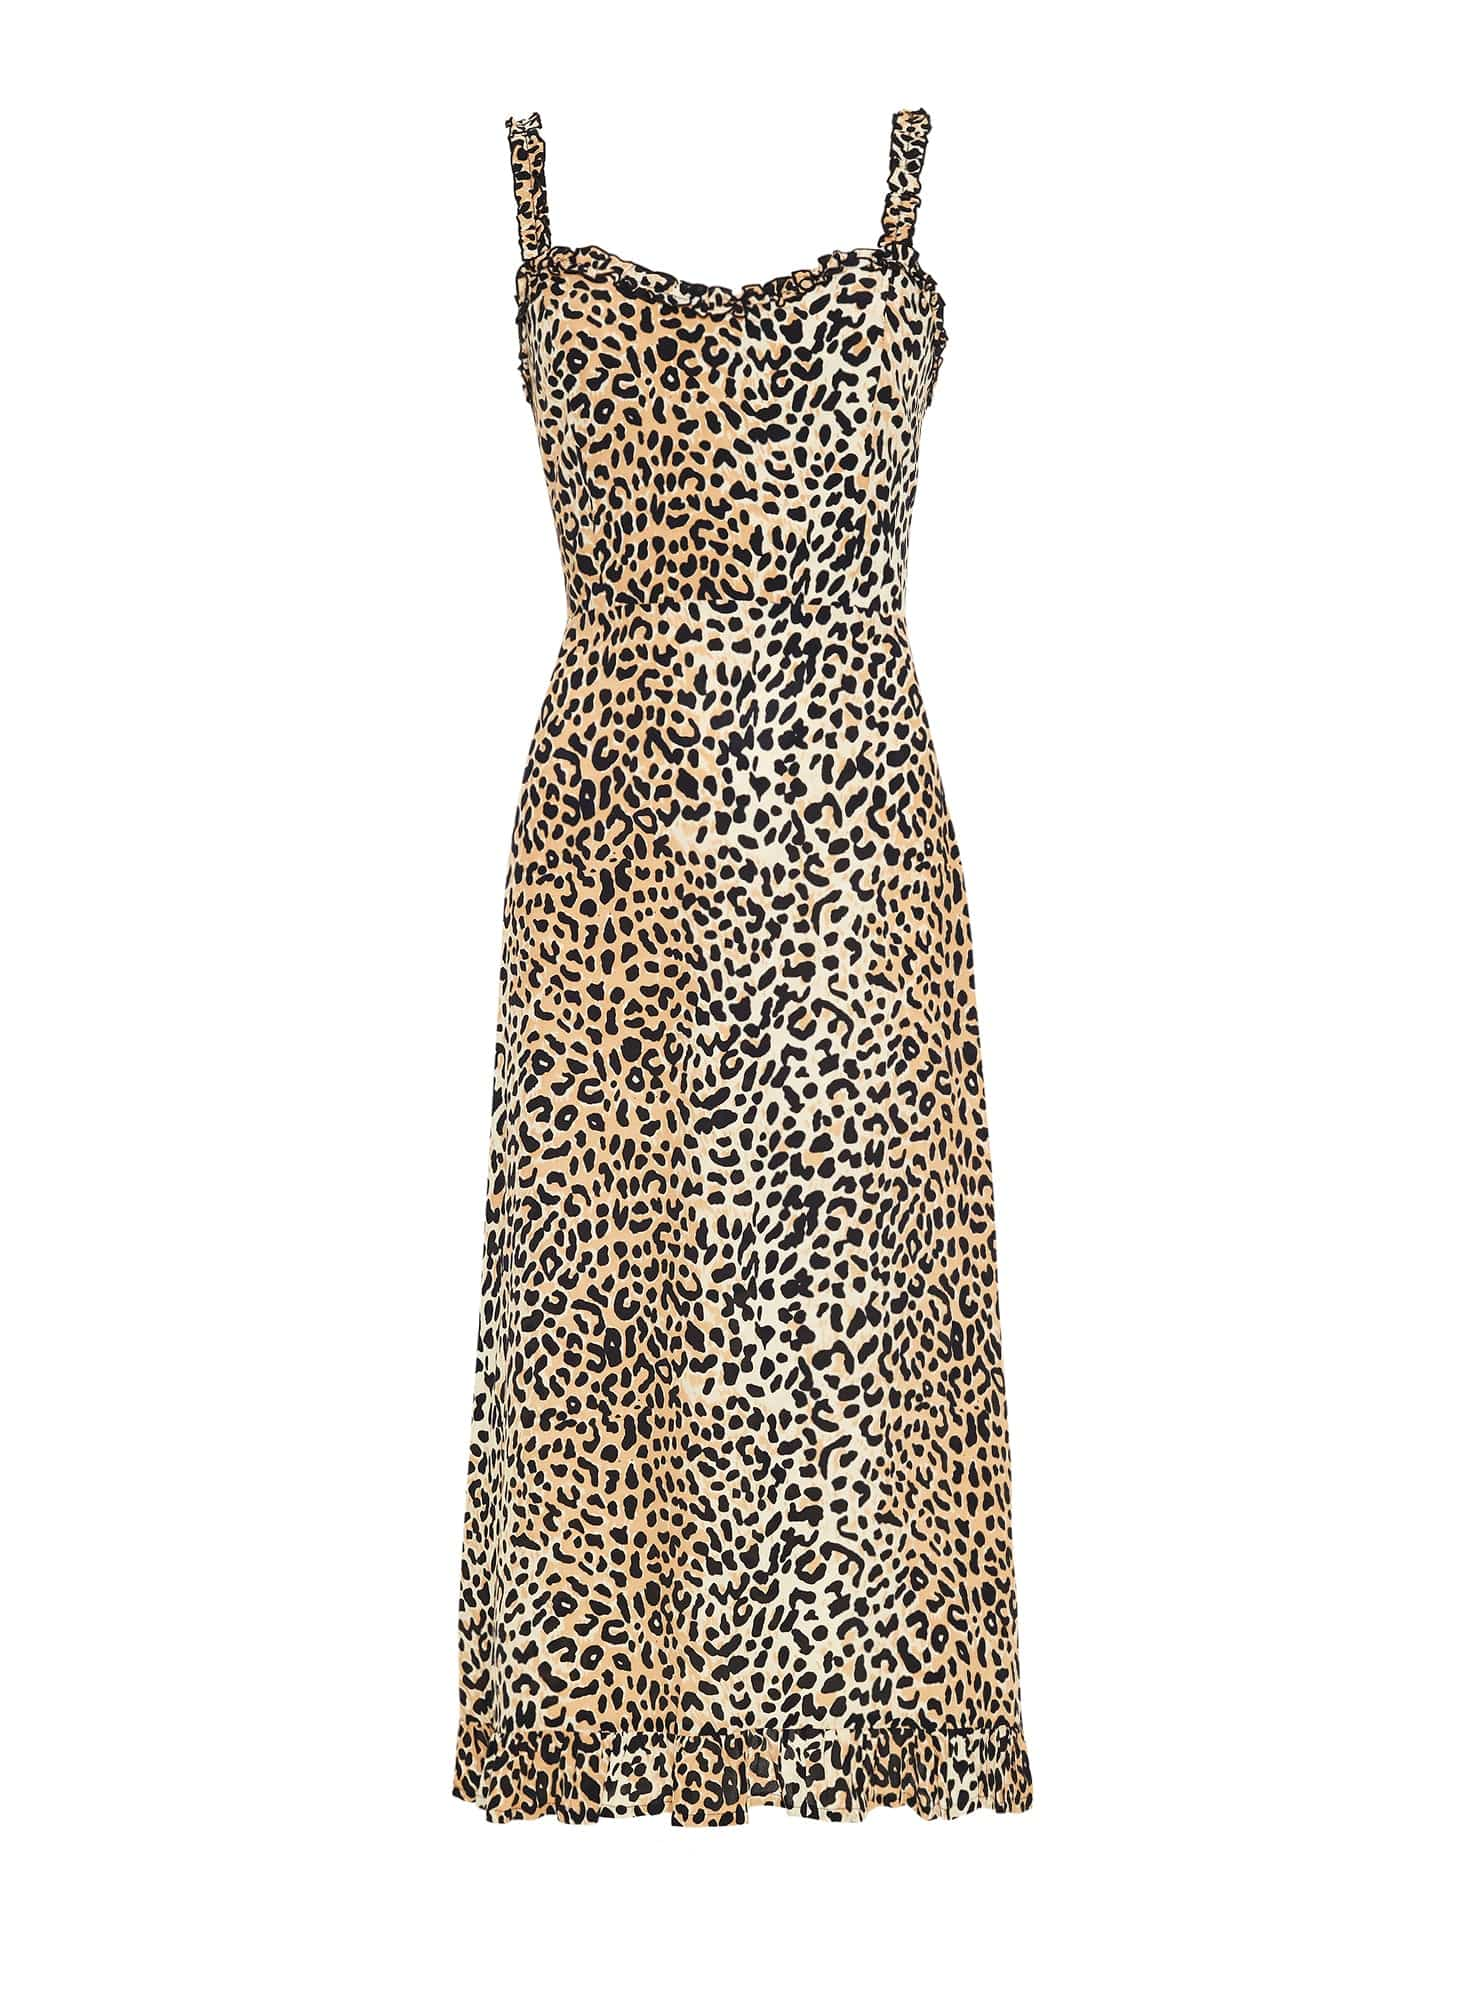 LE CINQ ANIMAL PRINT - NOEMIE MIDI DRESS - FINAL SALE